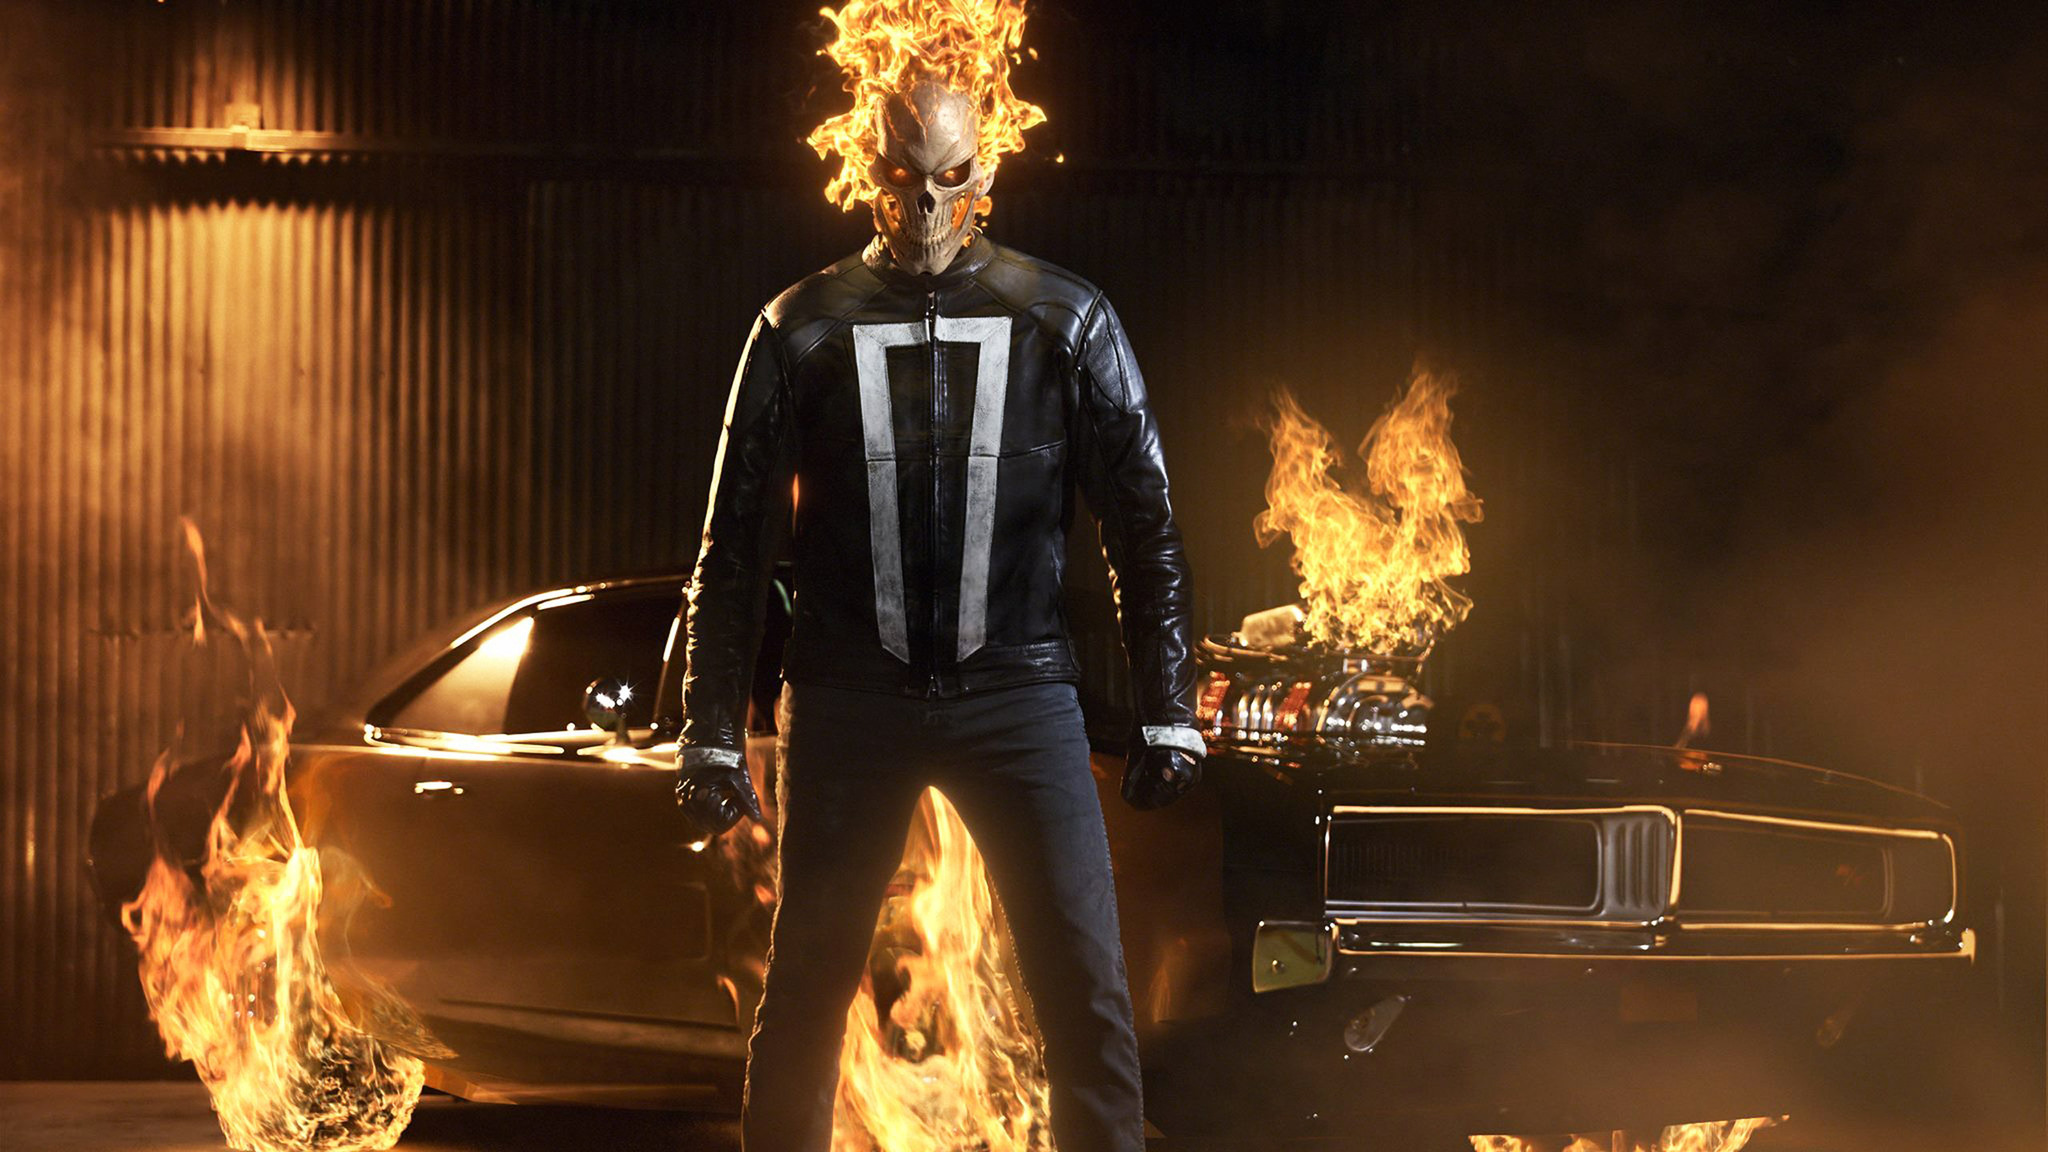 2048x1152 agents of shield ghost rider 2048x1152 resolution hd 4k